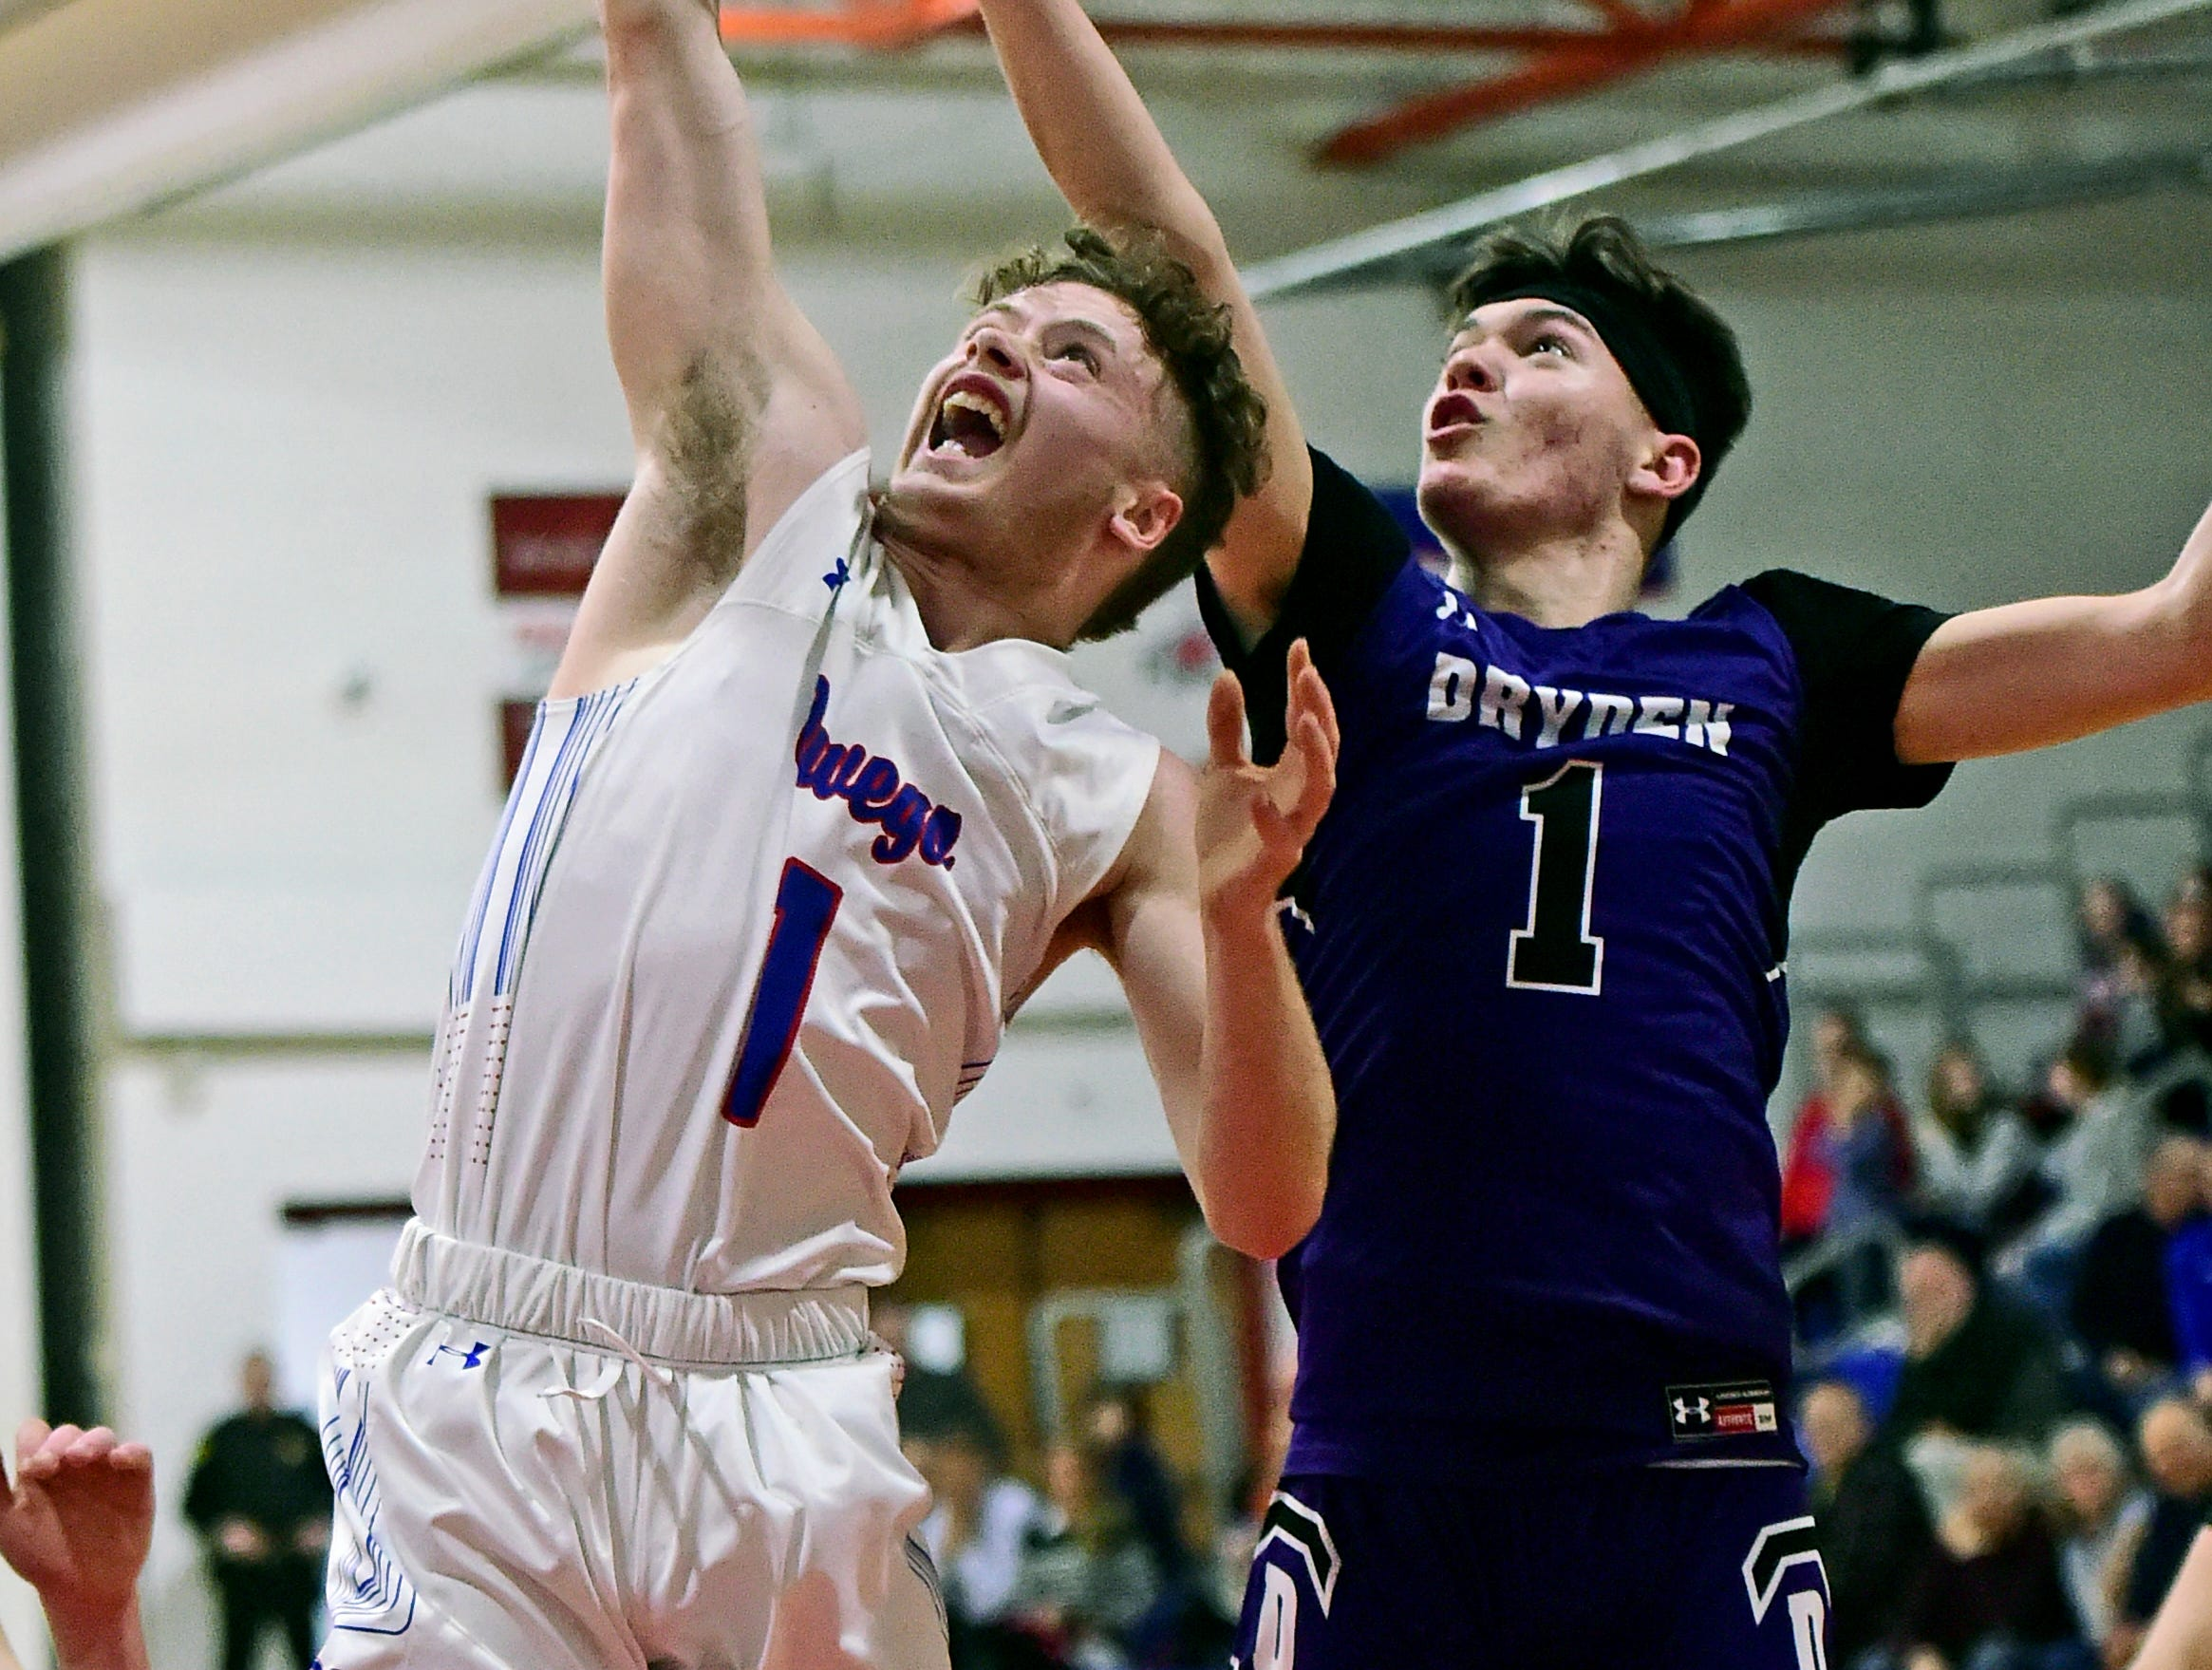 Owego's Christian Sage (1) looks to gain control of a rebound over Dryden's Michael Yuz'vak (1) during Friday's Section 4 Class B boys basketball quarterfinal, Dryden at Owego Free Academy, February 22, 2019.